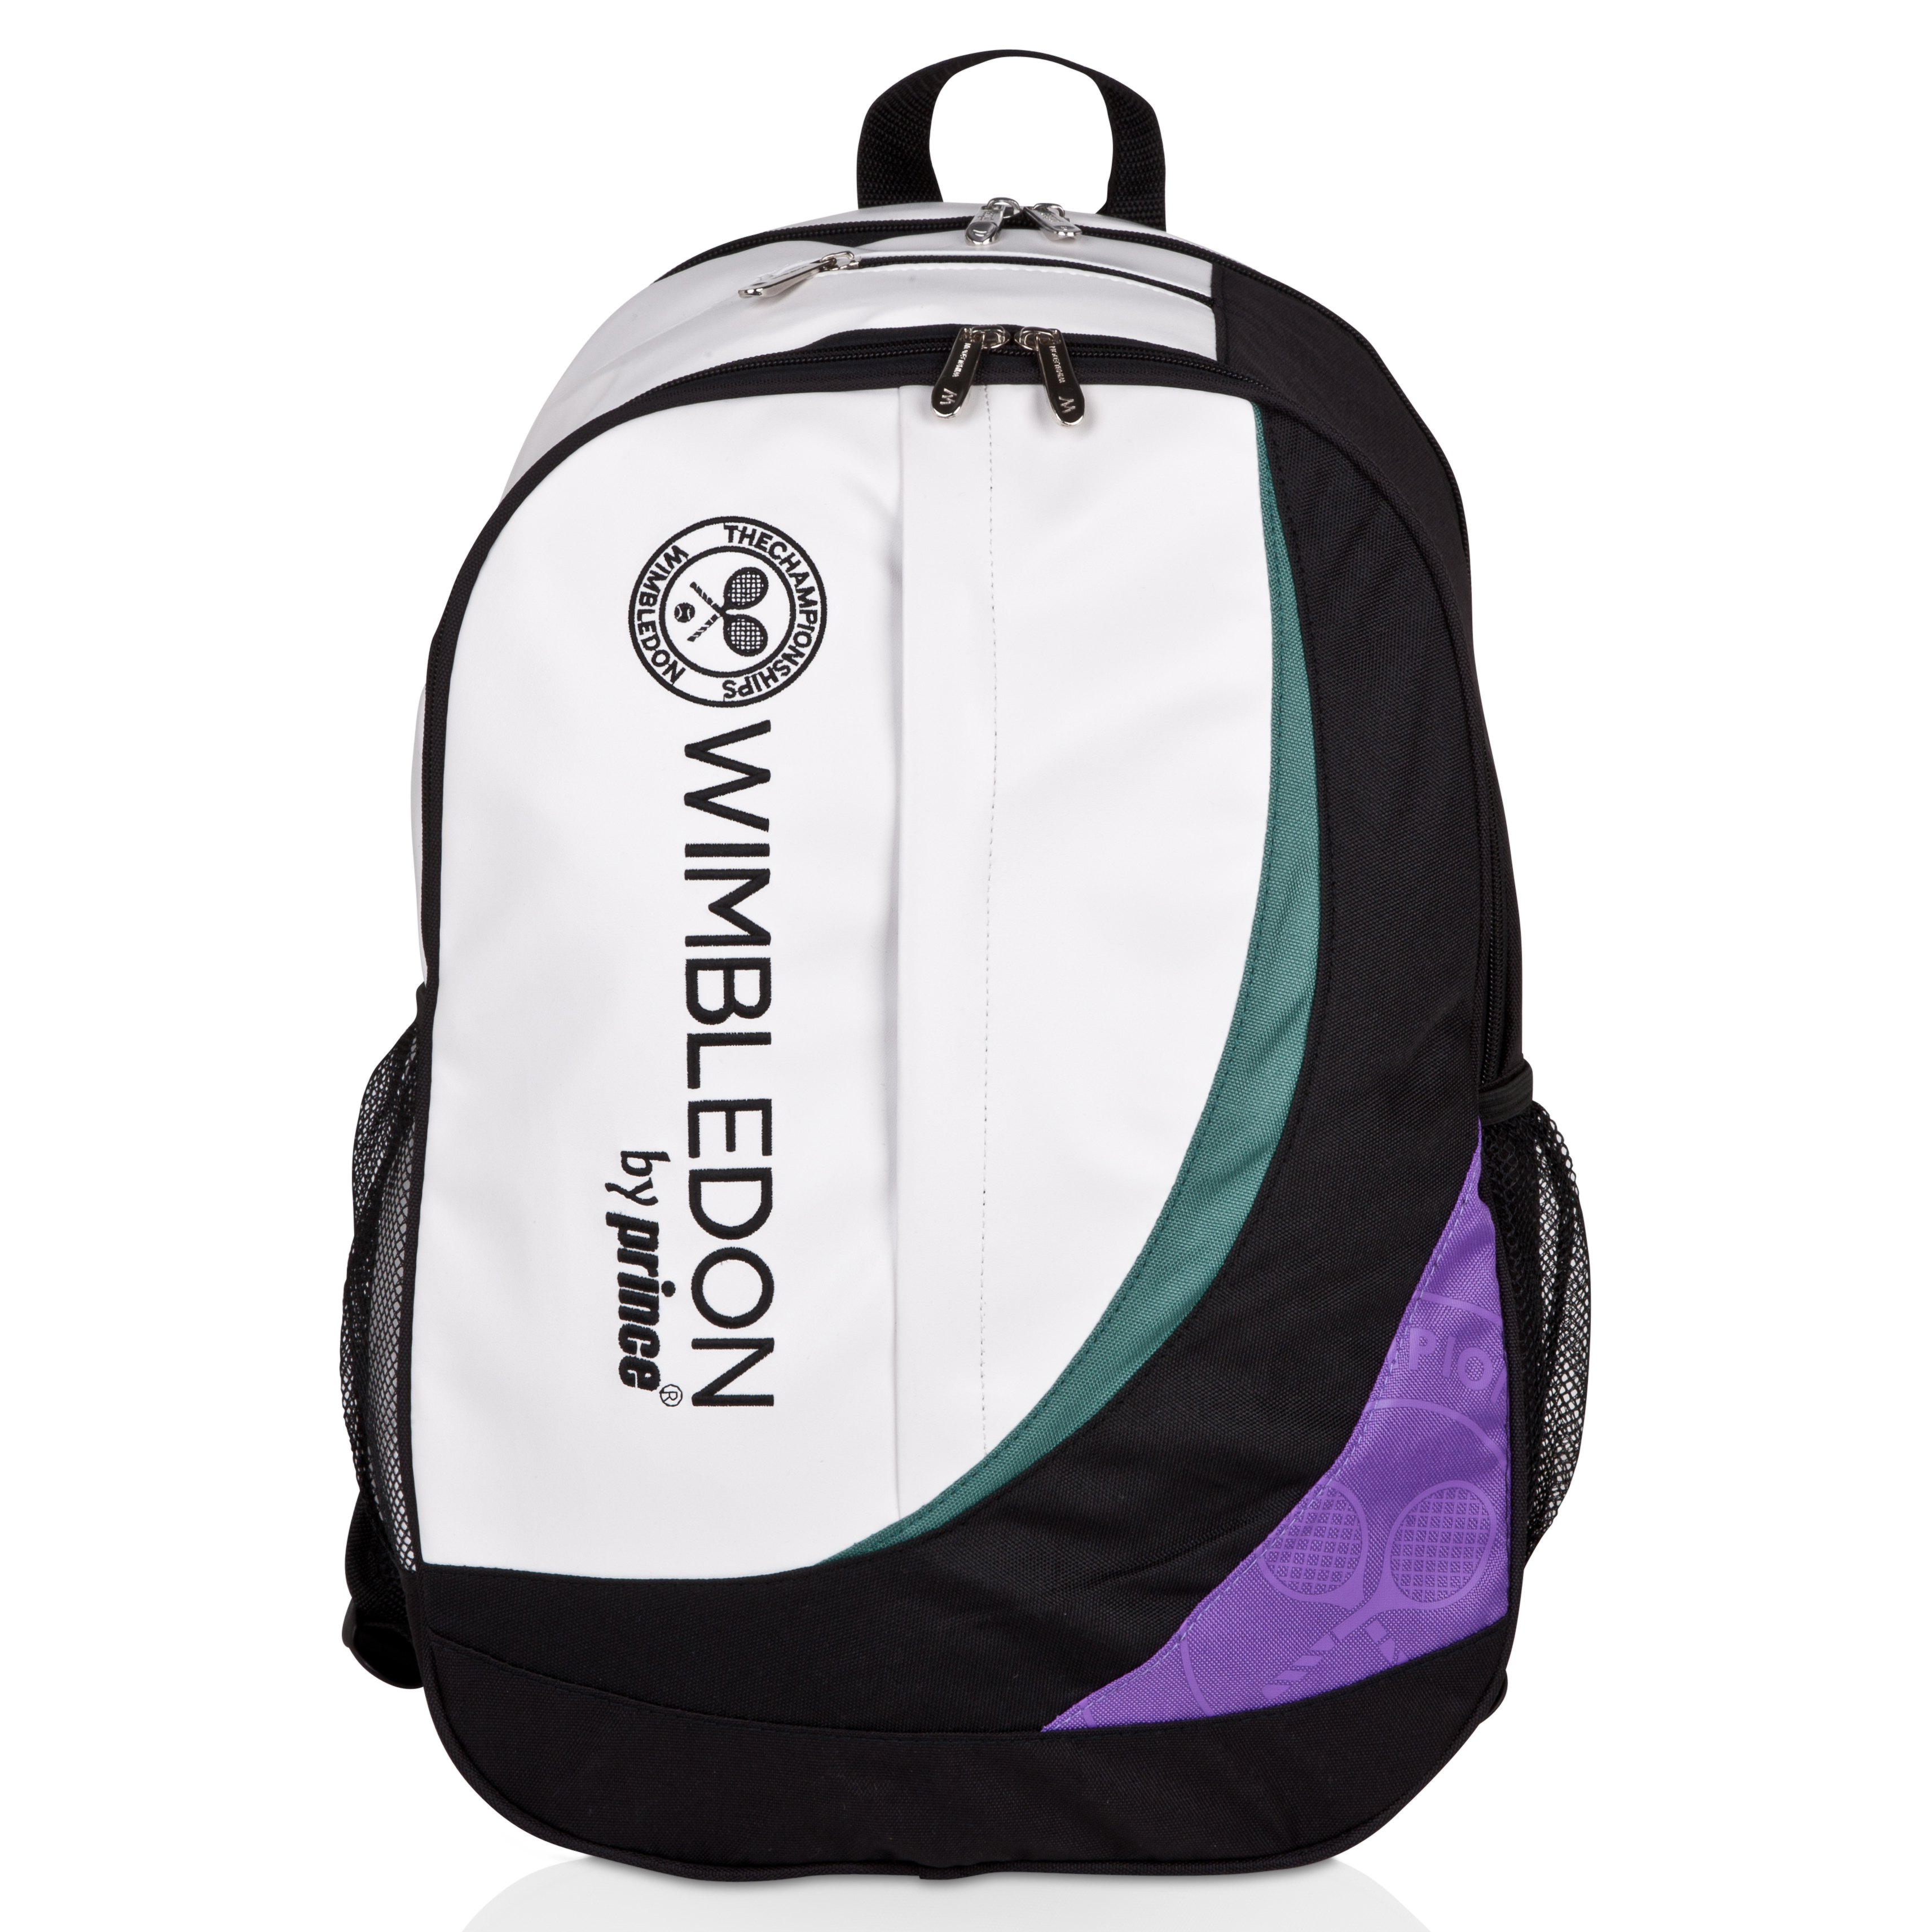 Wimbledon By Prince Top Seed Collection Backpack